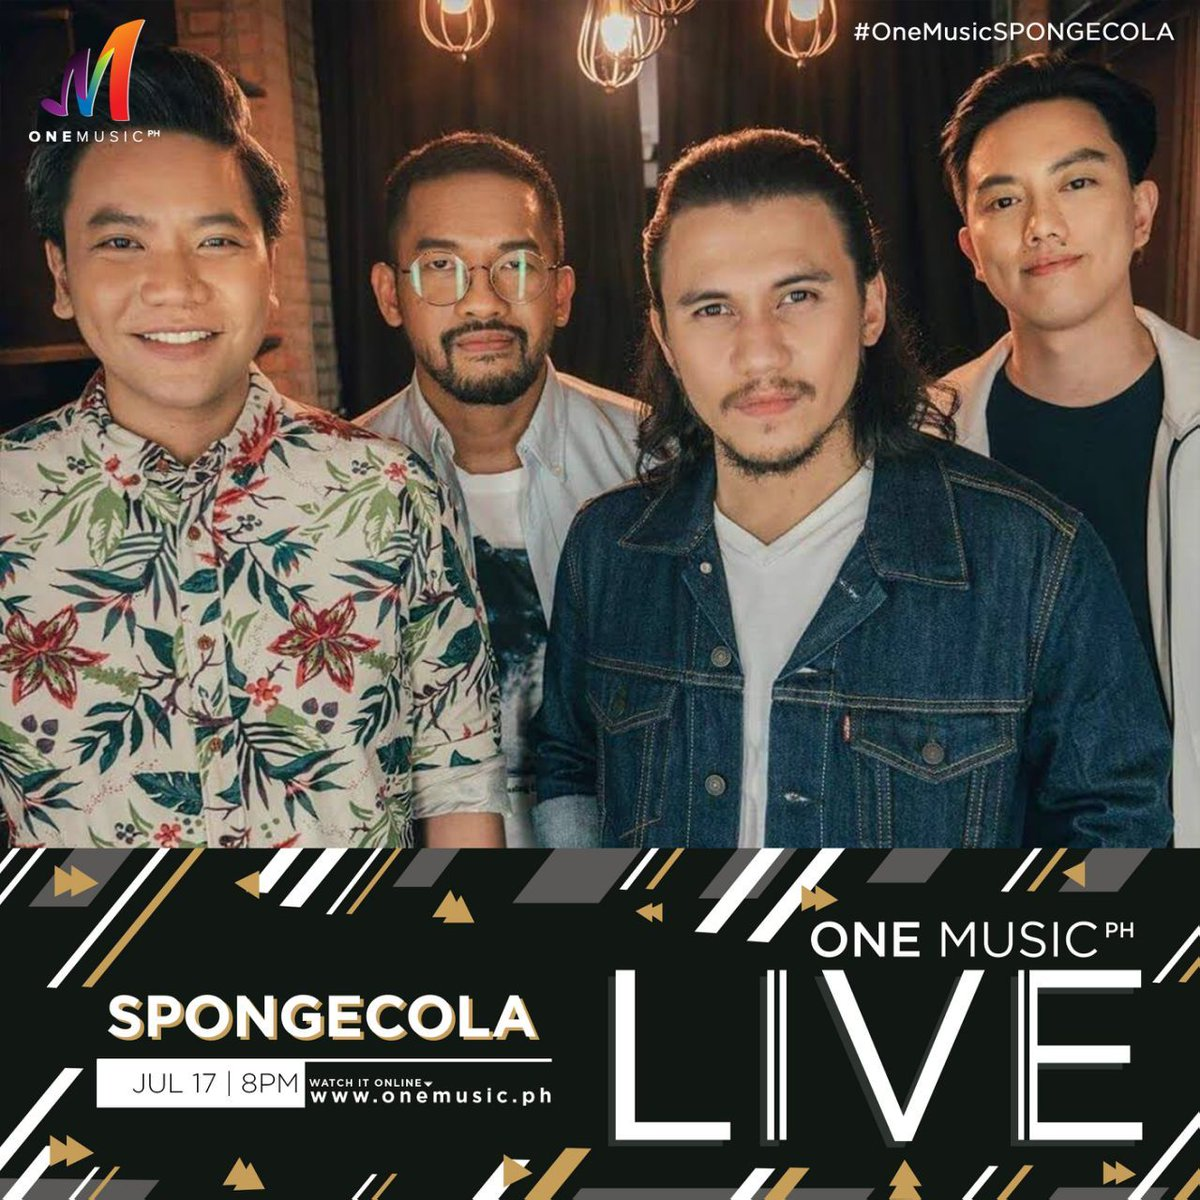 Were coming back for another #OneMusicLIVE session next Tuesday! Catch @sponge_cola on July 17, starting 8 PM only on the One Music PH Facebook and YouTube channel!